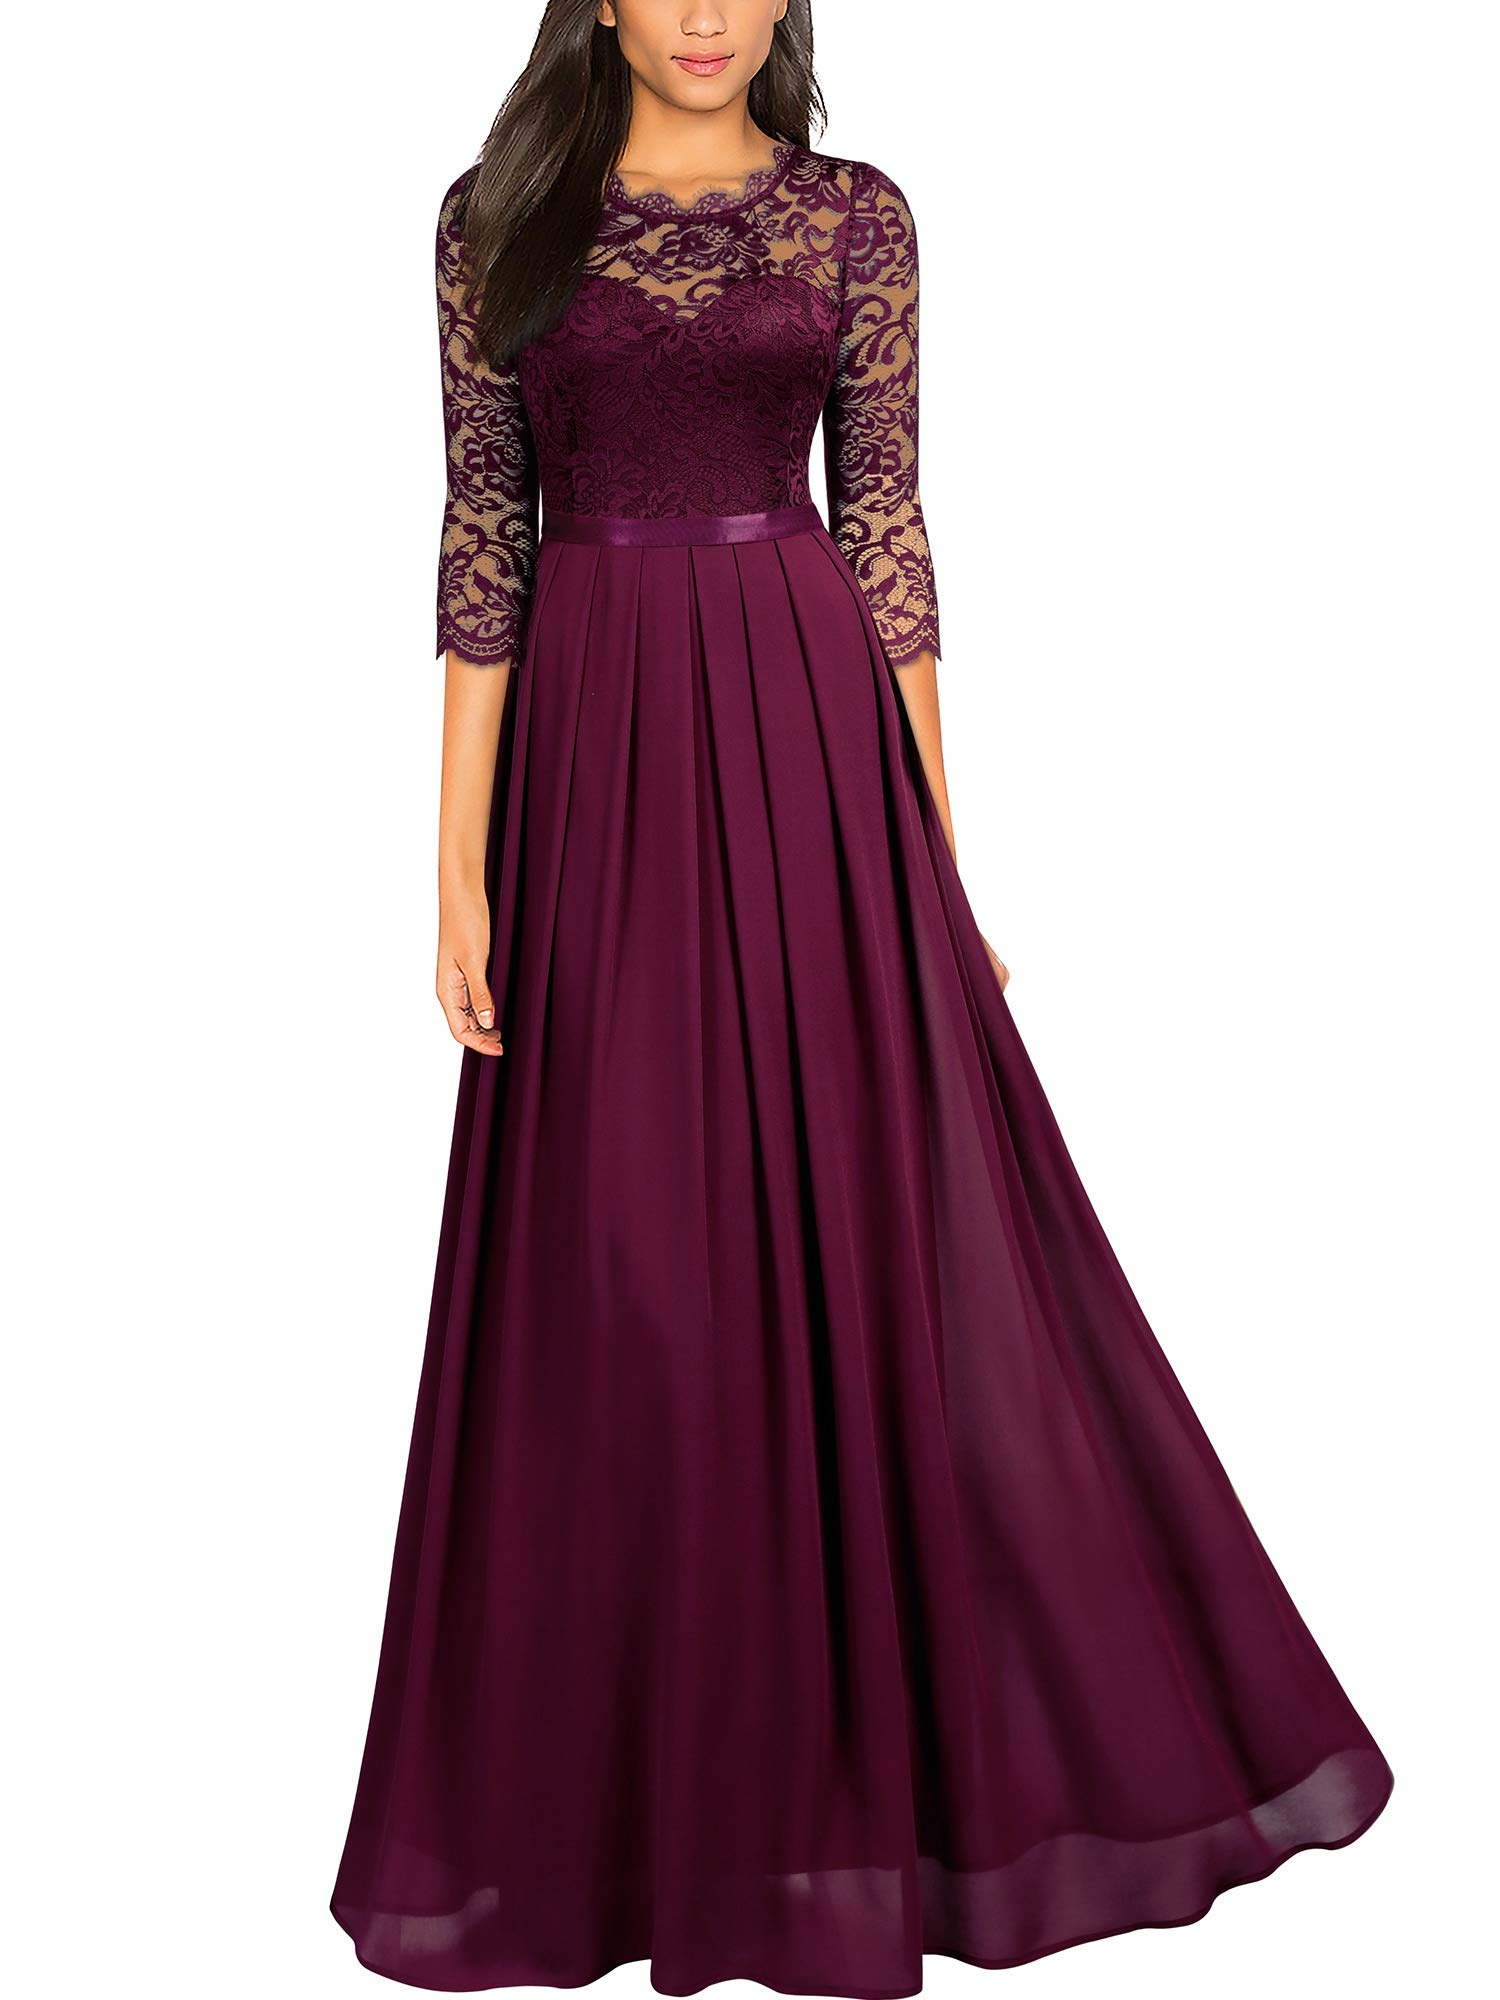 Party Dresses - Women's Formal Floral Lace Wedding Bridesmaid Maxi Dress